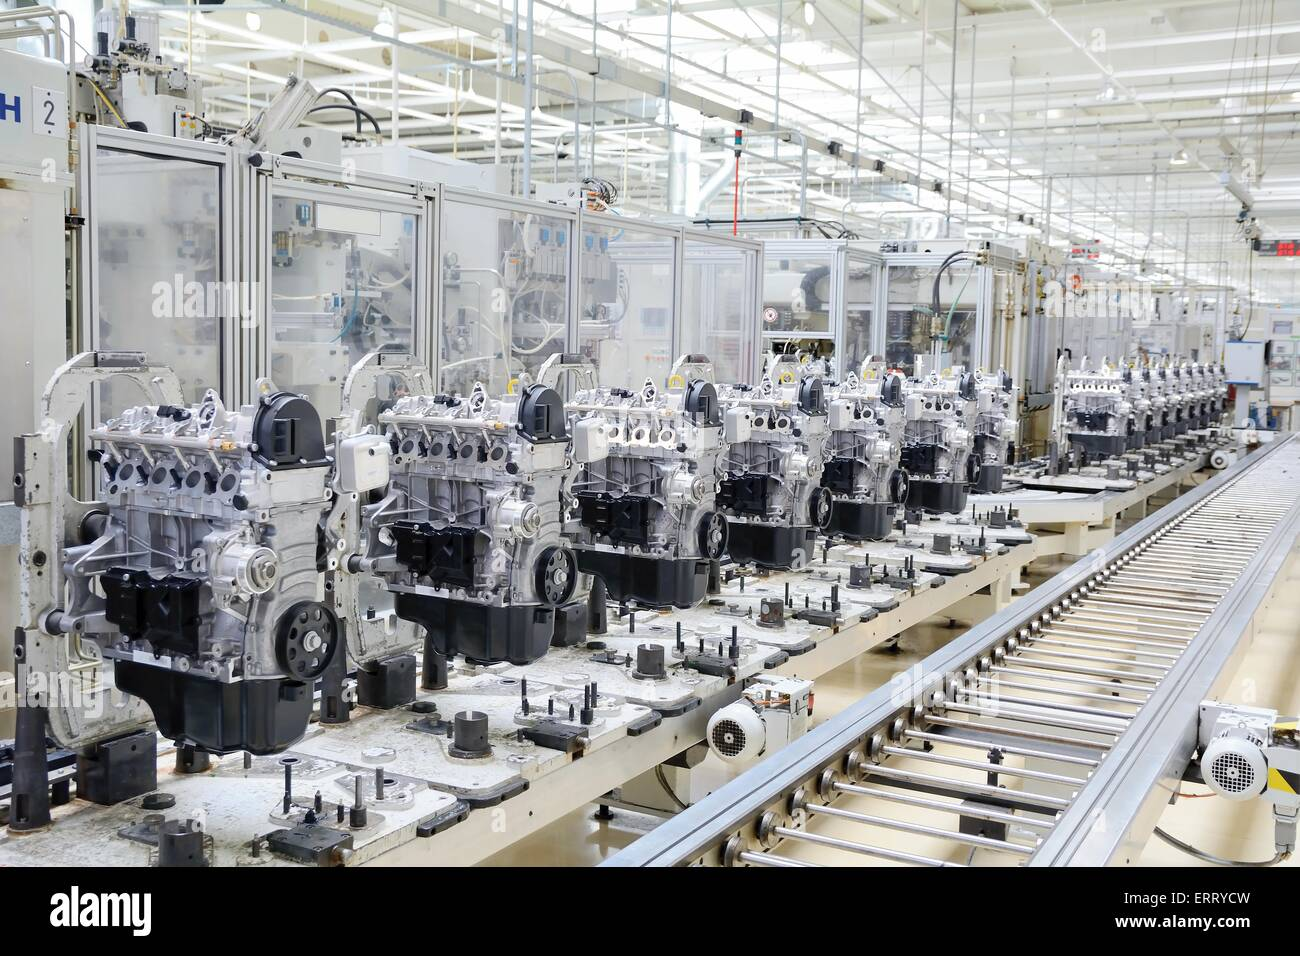 Production line for manufacturing of the engines in the car factory. - Stock Image